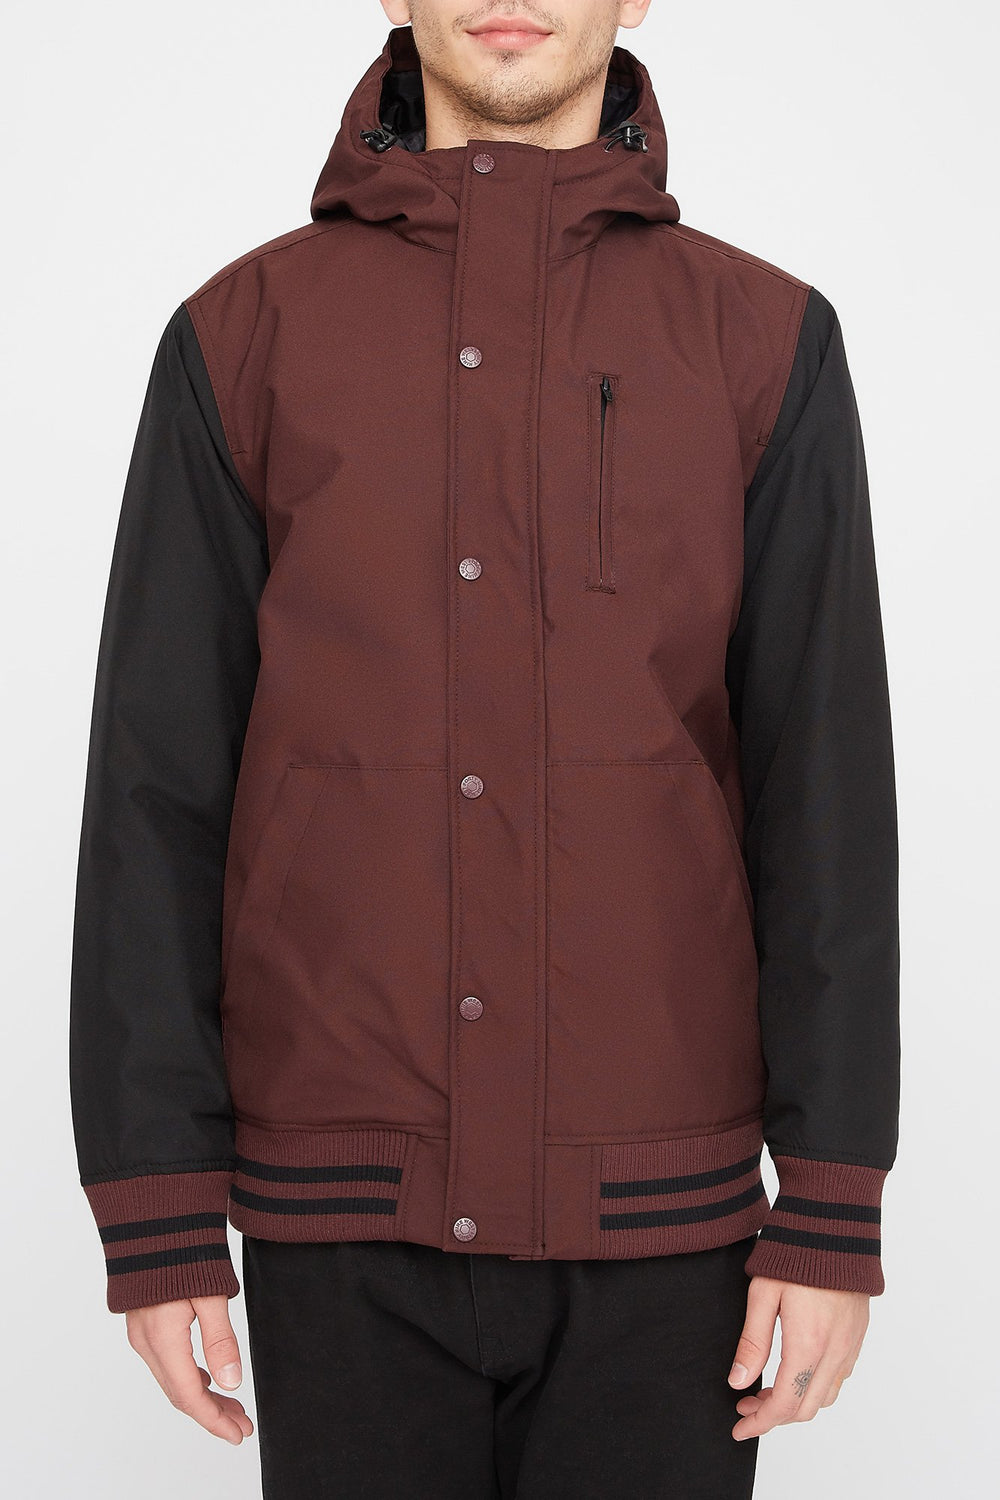 West49 Mens Colour Block Varsity Jacket Burgundy